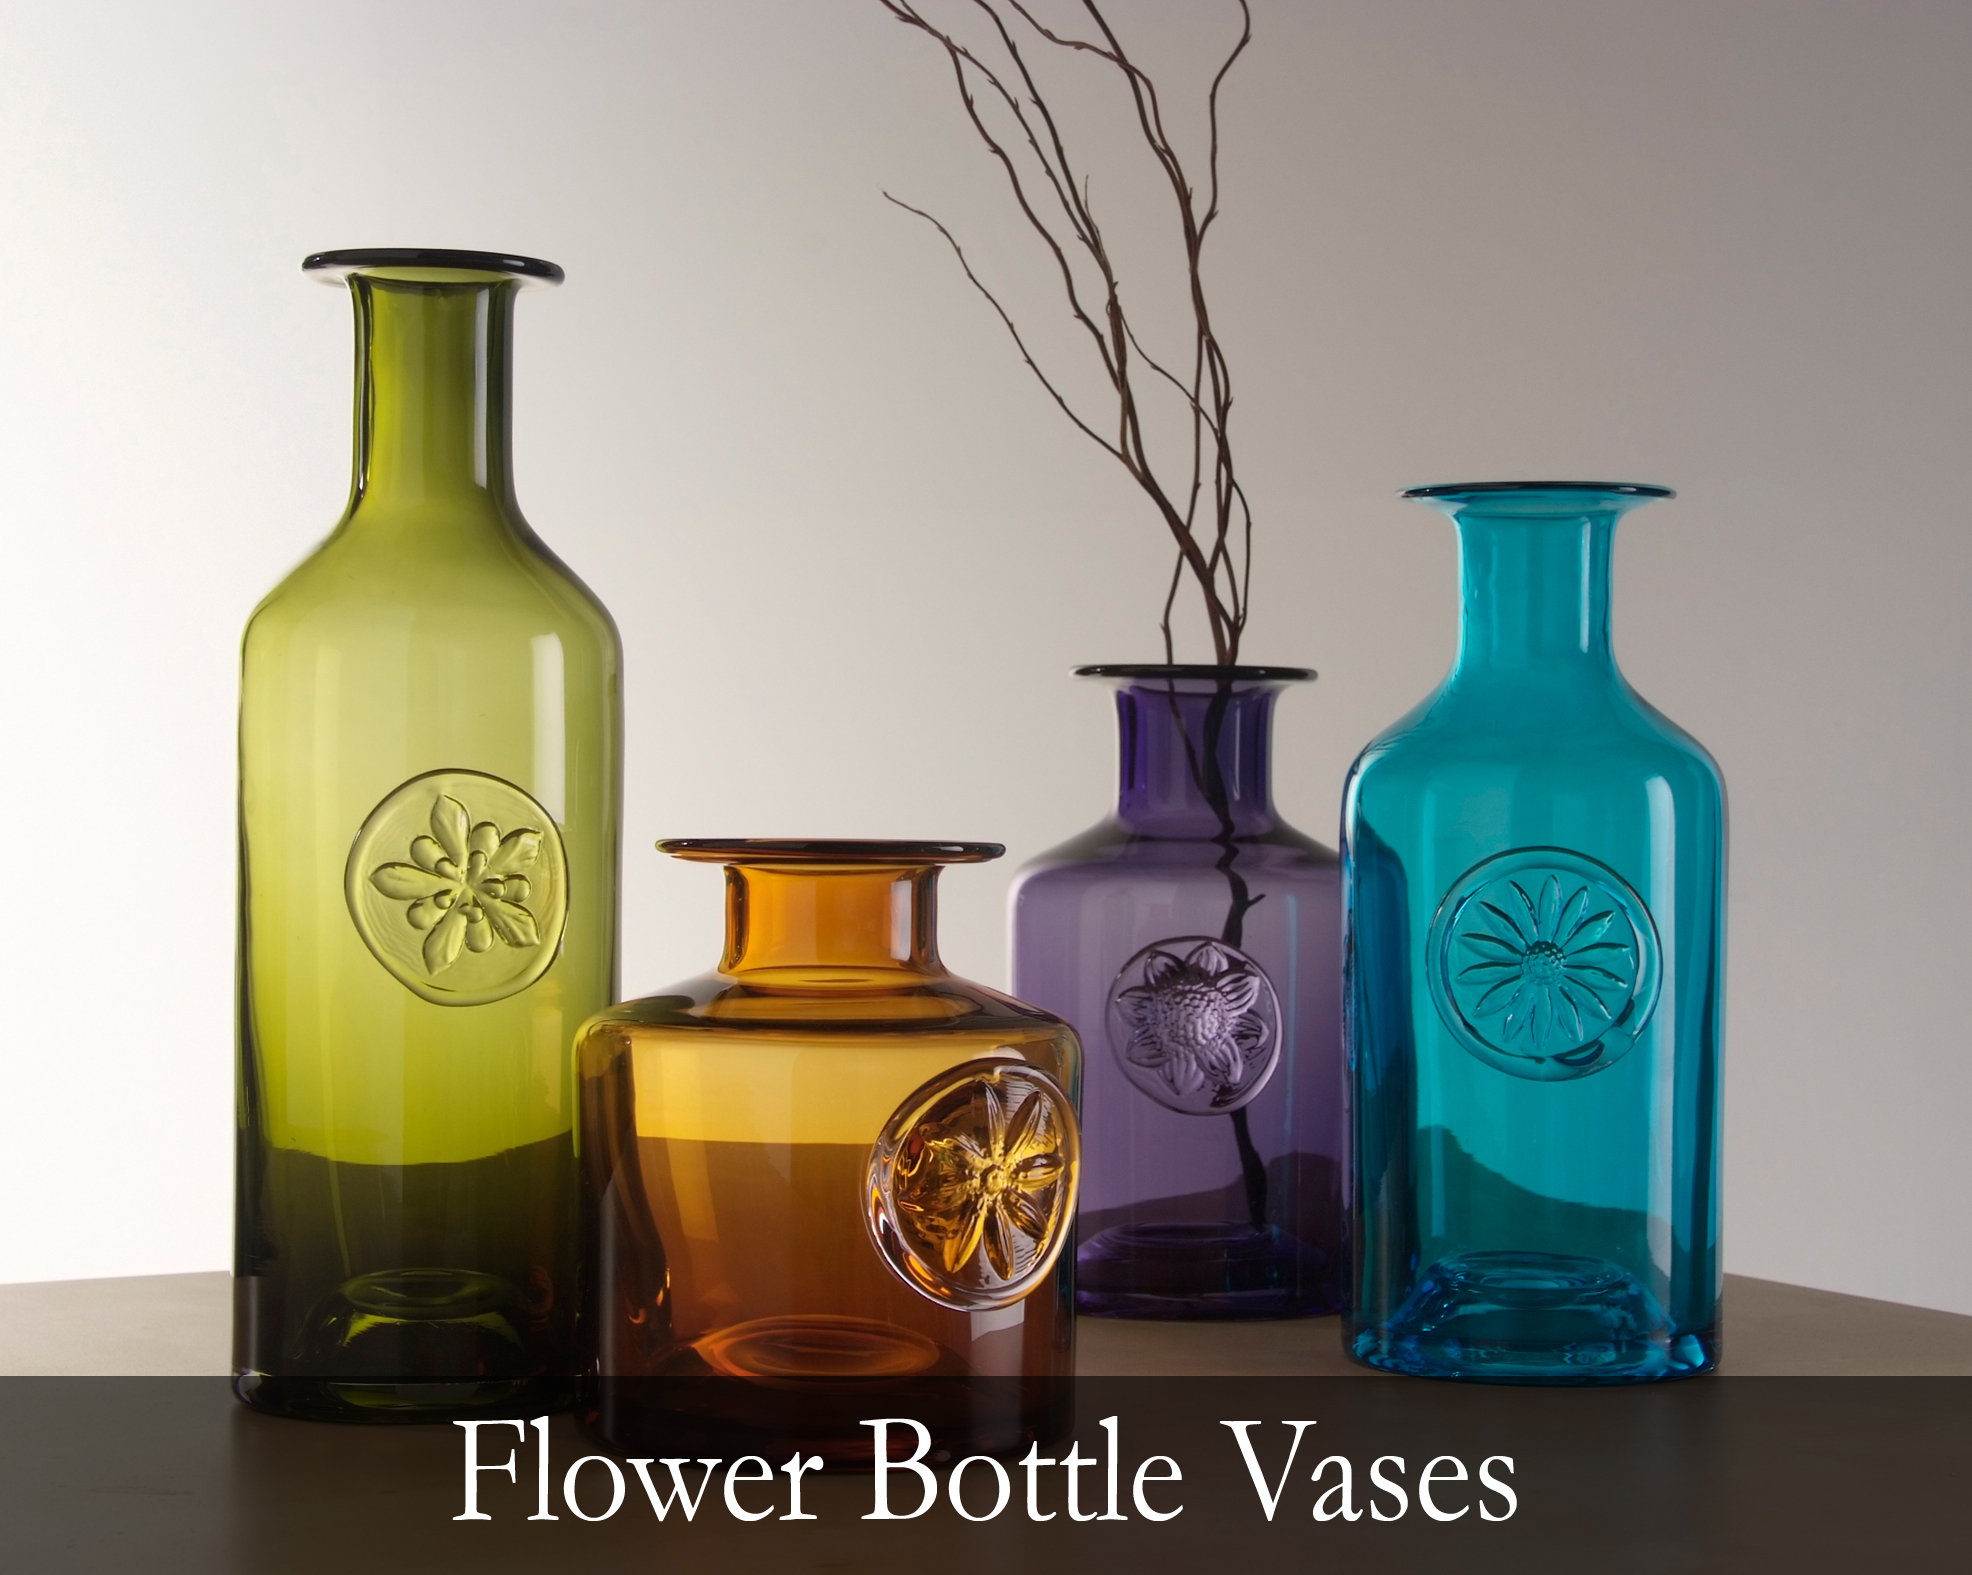 Flower Bottle Vases